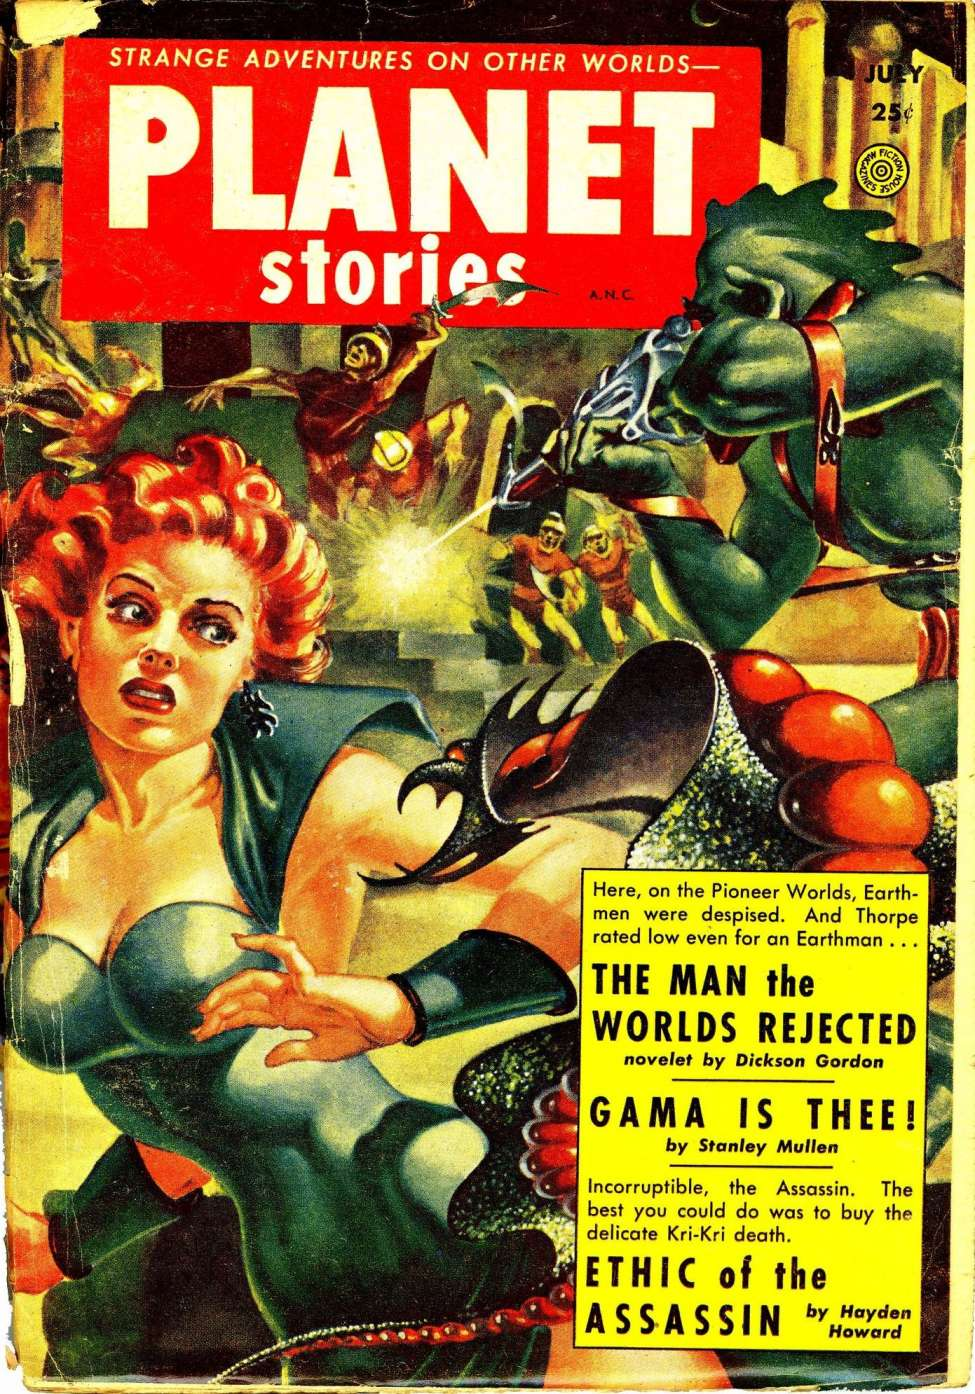 Comic Book Cover For Planet Stories v06 01 - The Man the Worlds Rejected - Dickson Gordon